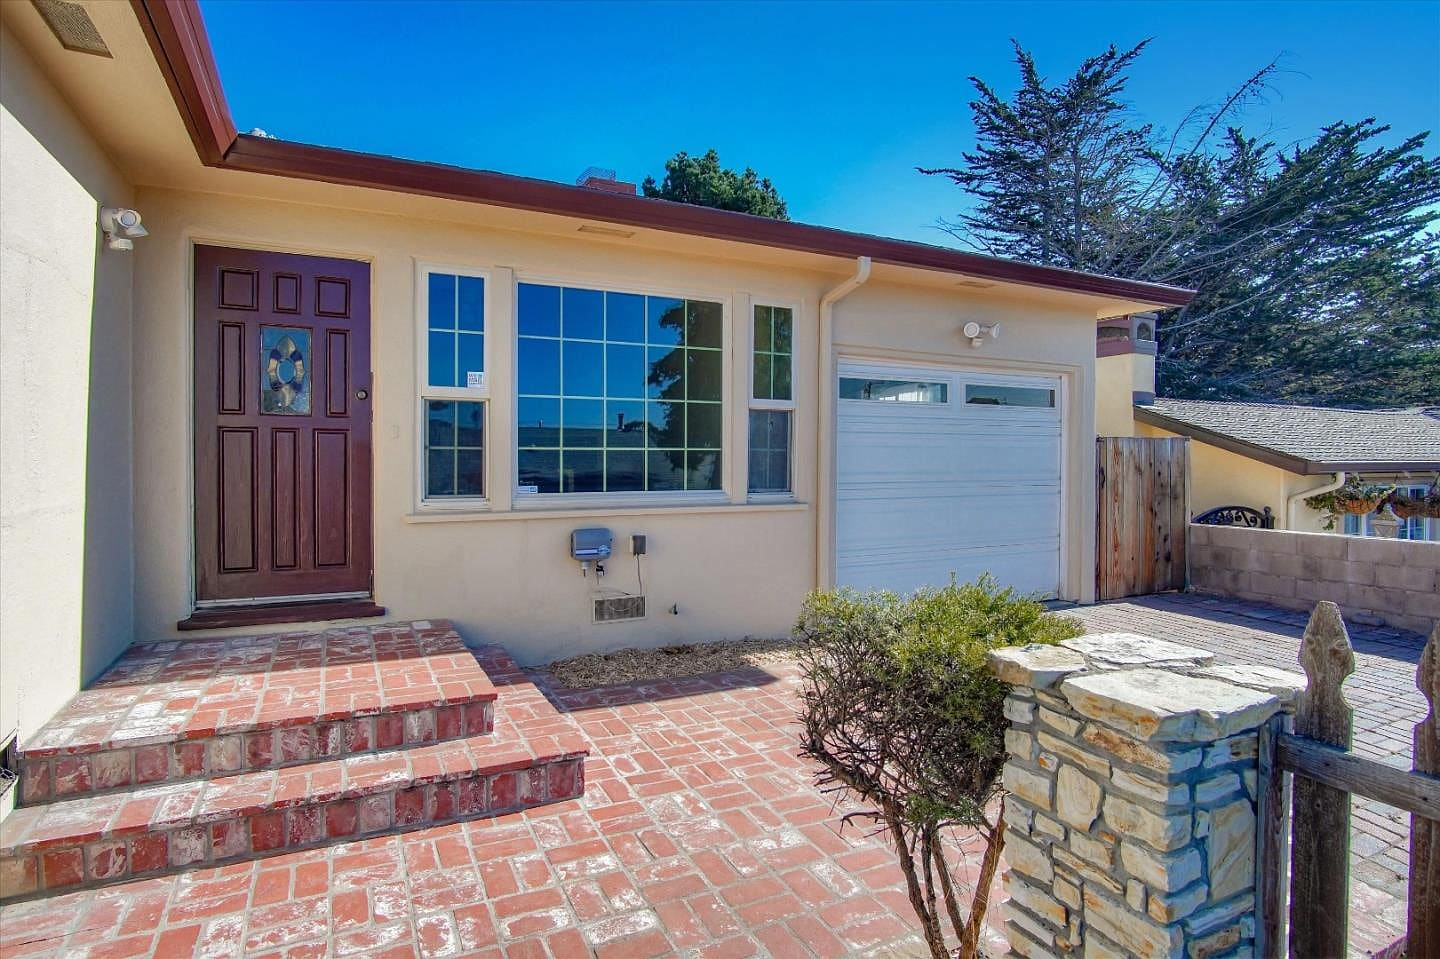 1260 Waring Street, Seaside, CA - Cute Renovated Home video preview